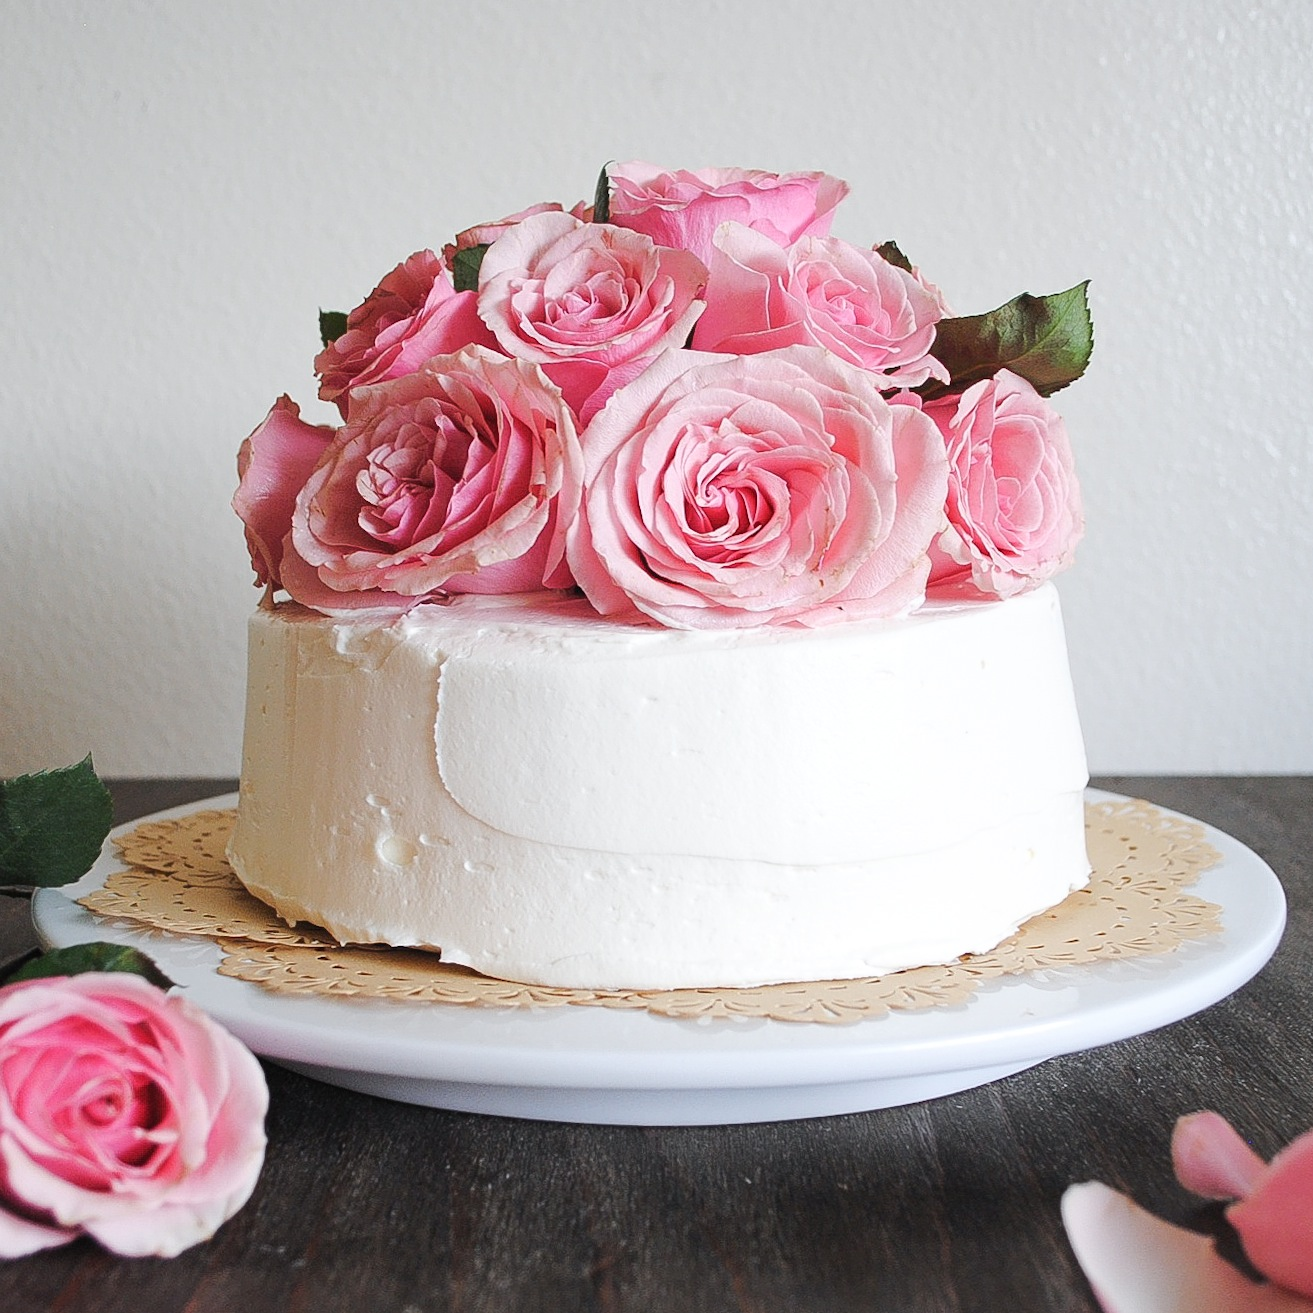 rose birthday cake tayberry chocolate cake with fresh cut roses blessings 7111